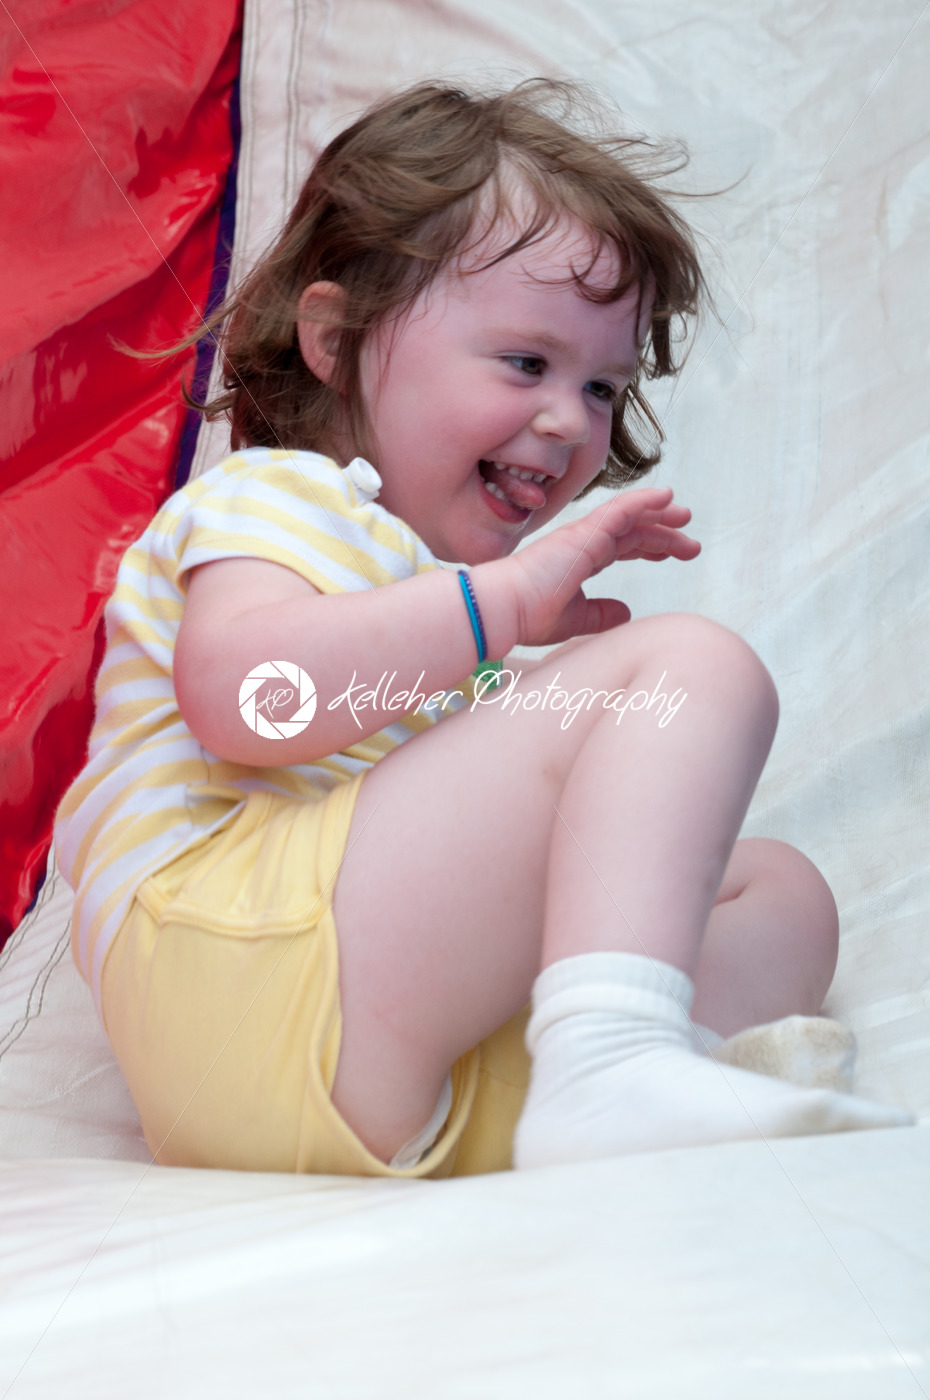 Young happy girl child riding inflatable slide outdoors on a warm summer day. - Kelleher Photography Store